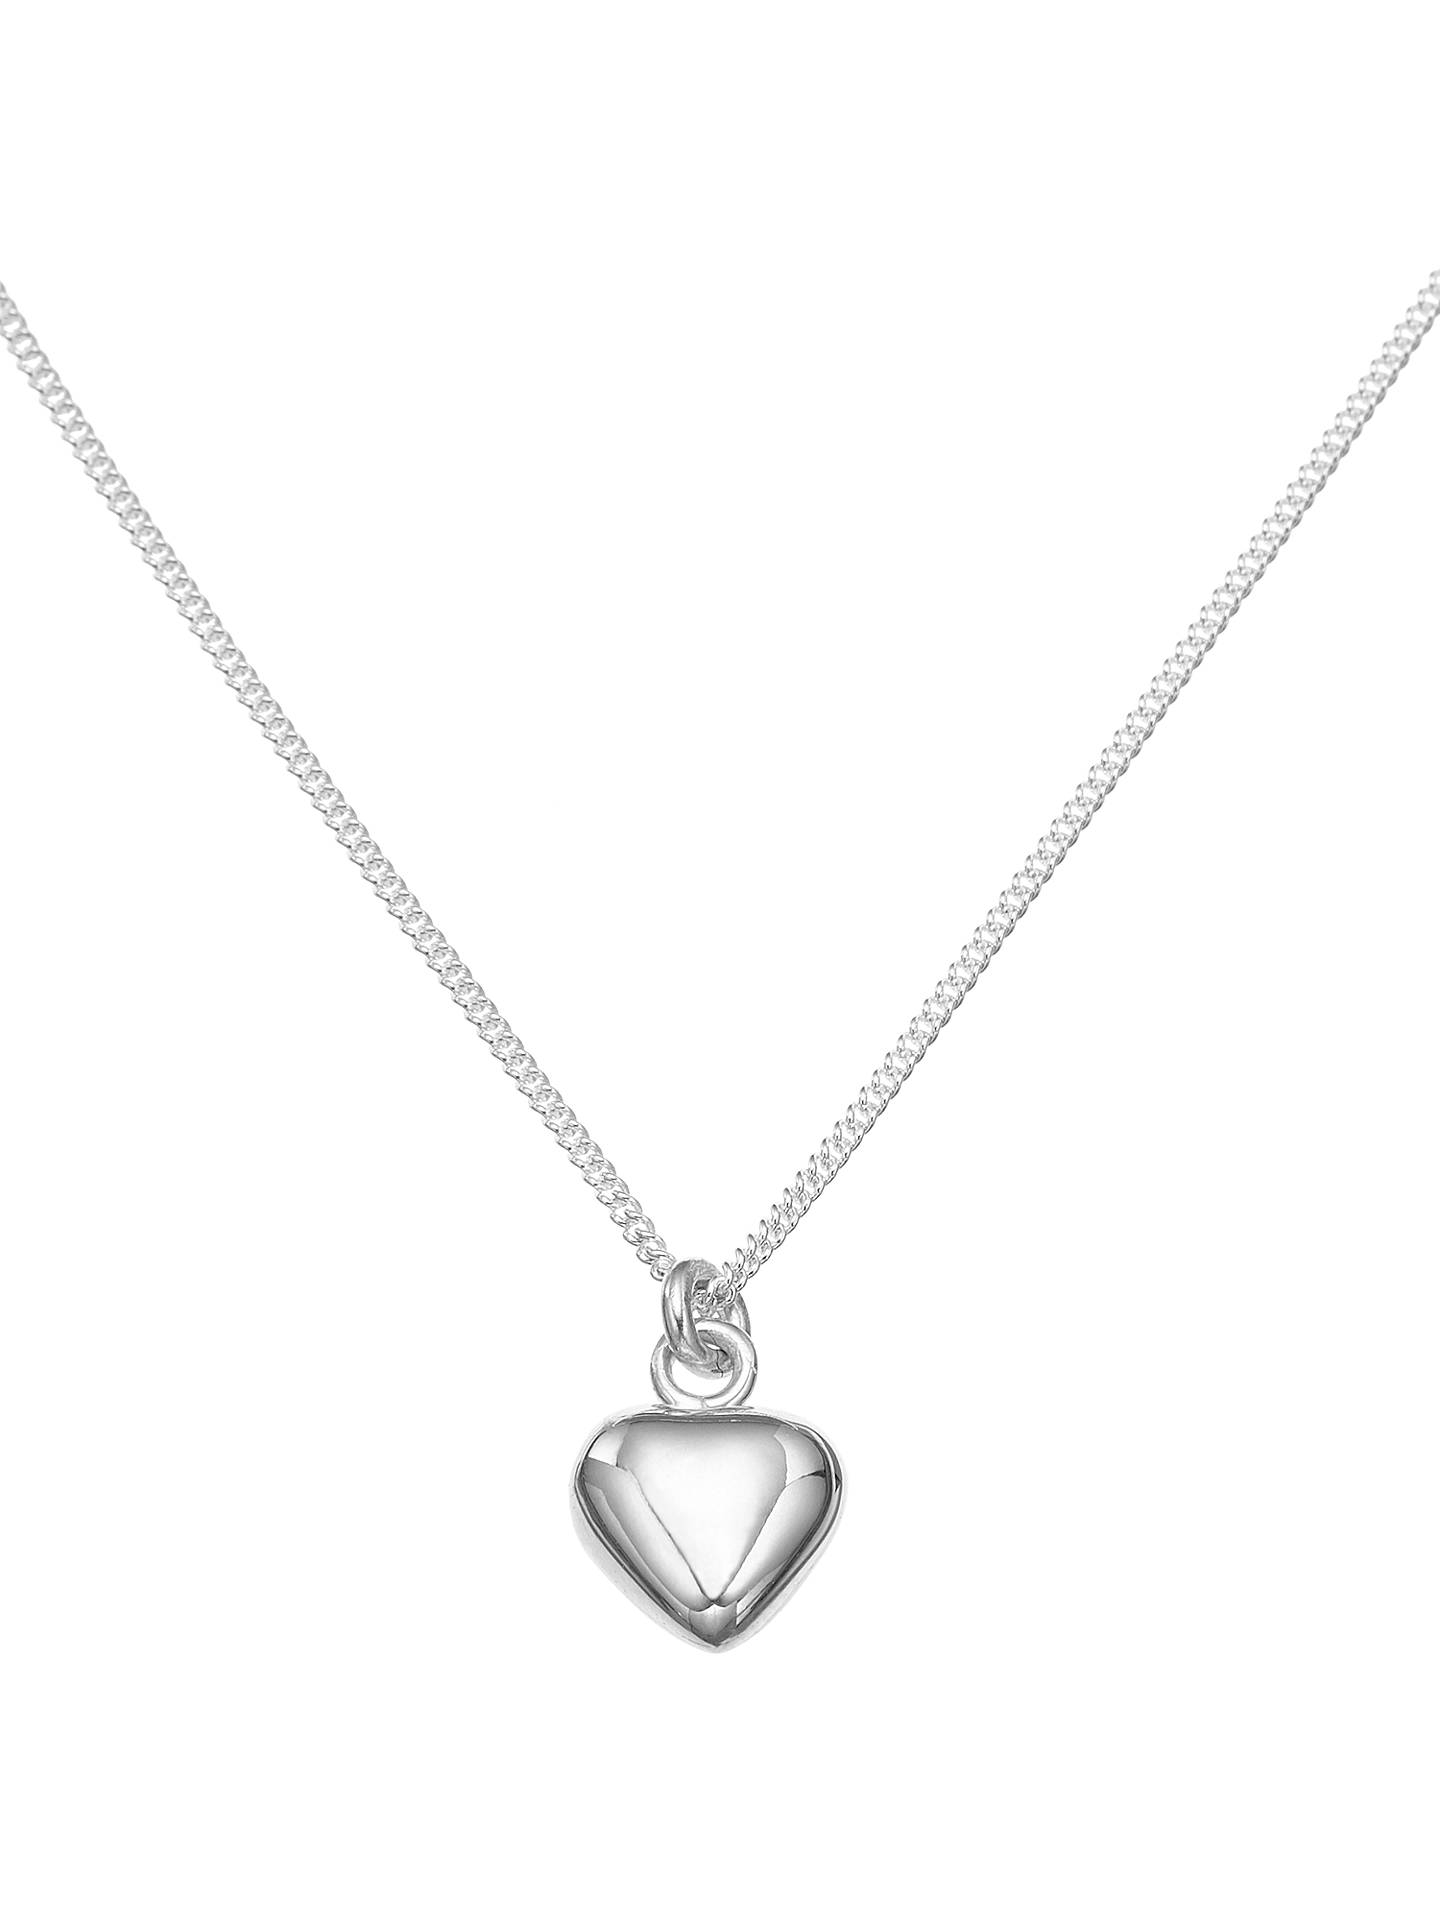 BuyJohn Lewis & Partners Sterling Silver Heart Necklace Online at johnlewis.com